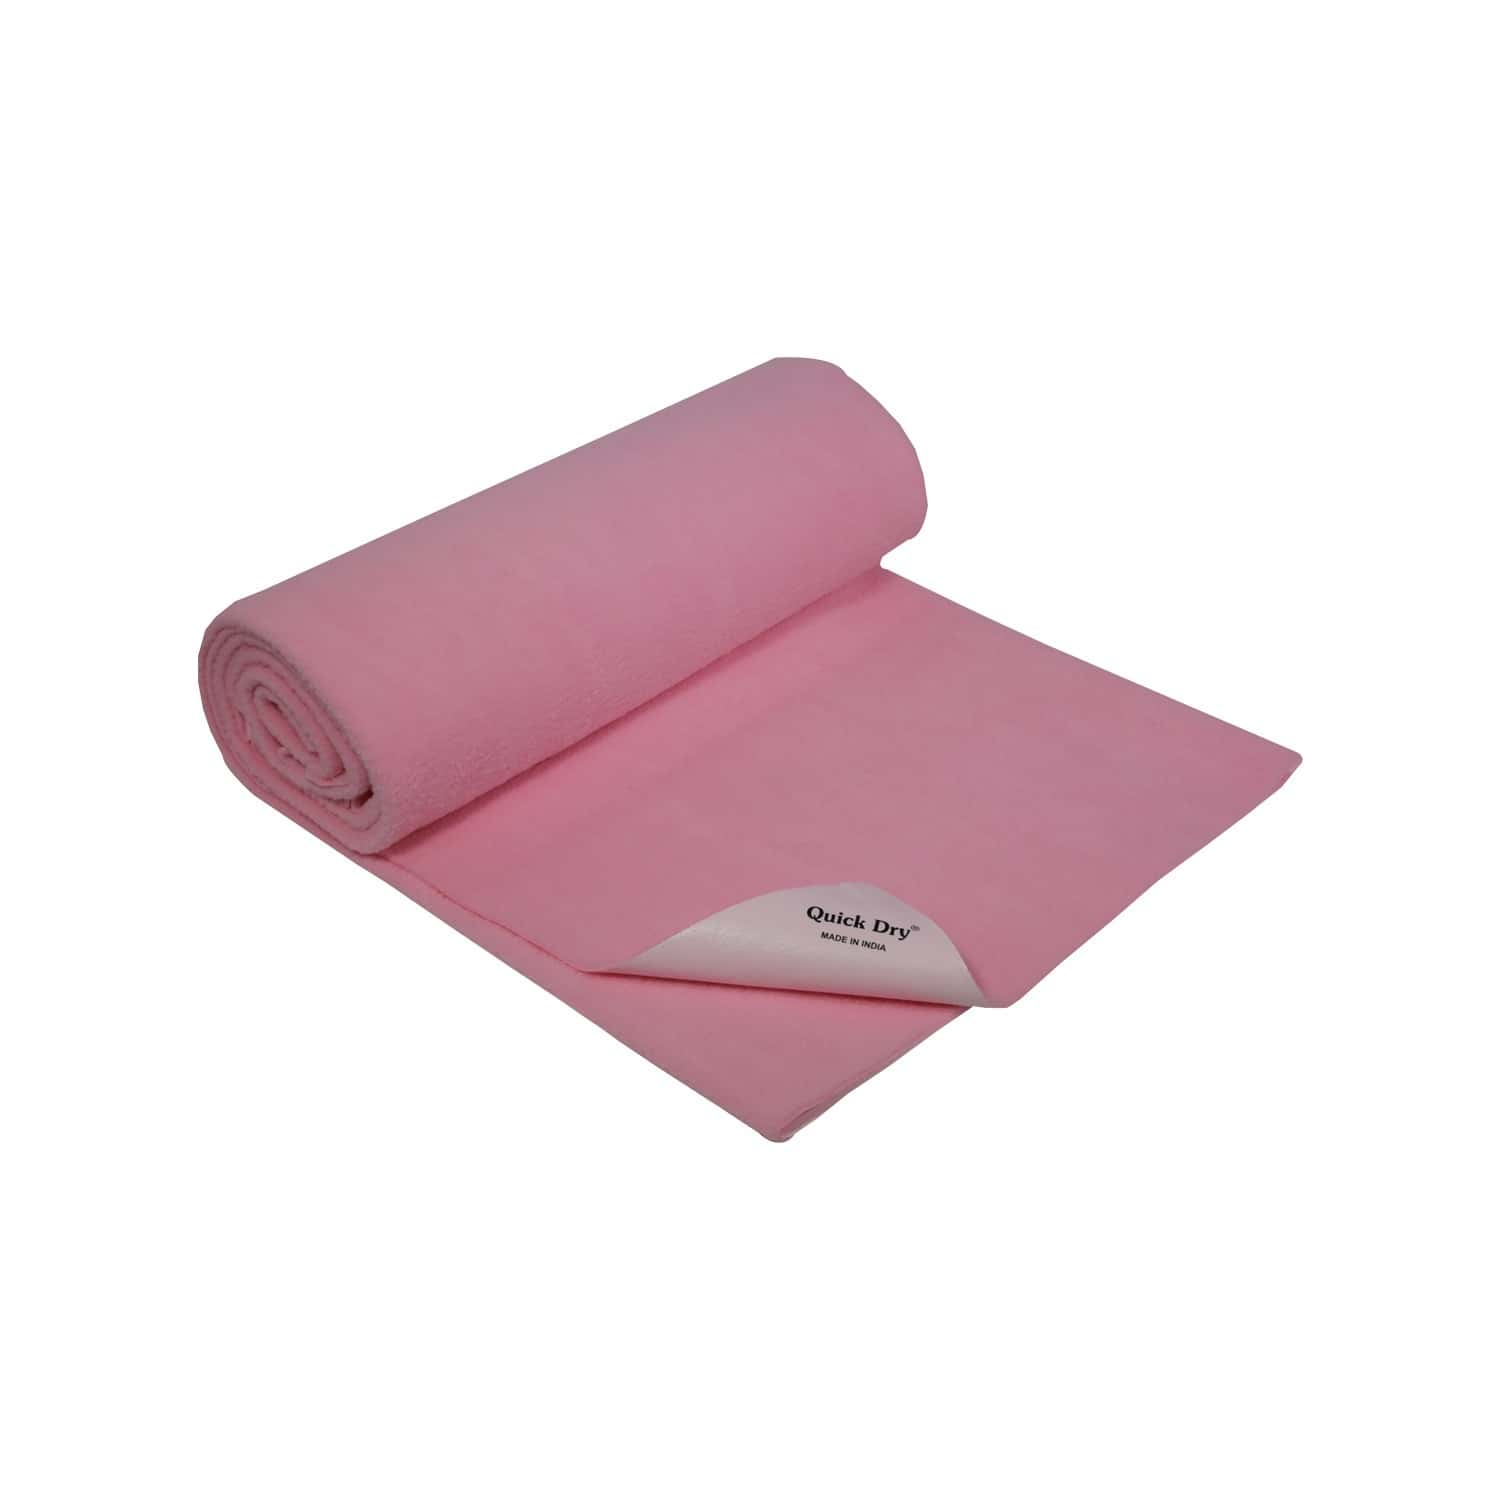 Quick Dry Baby Bed Protector - Plain Pink - Large - 140 X 100 Cms